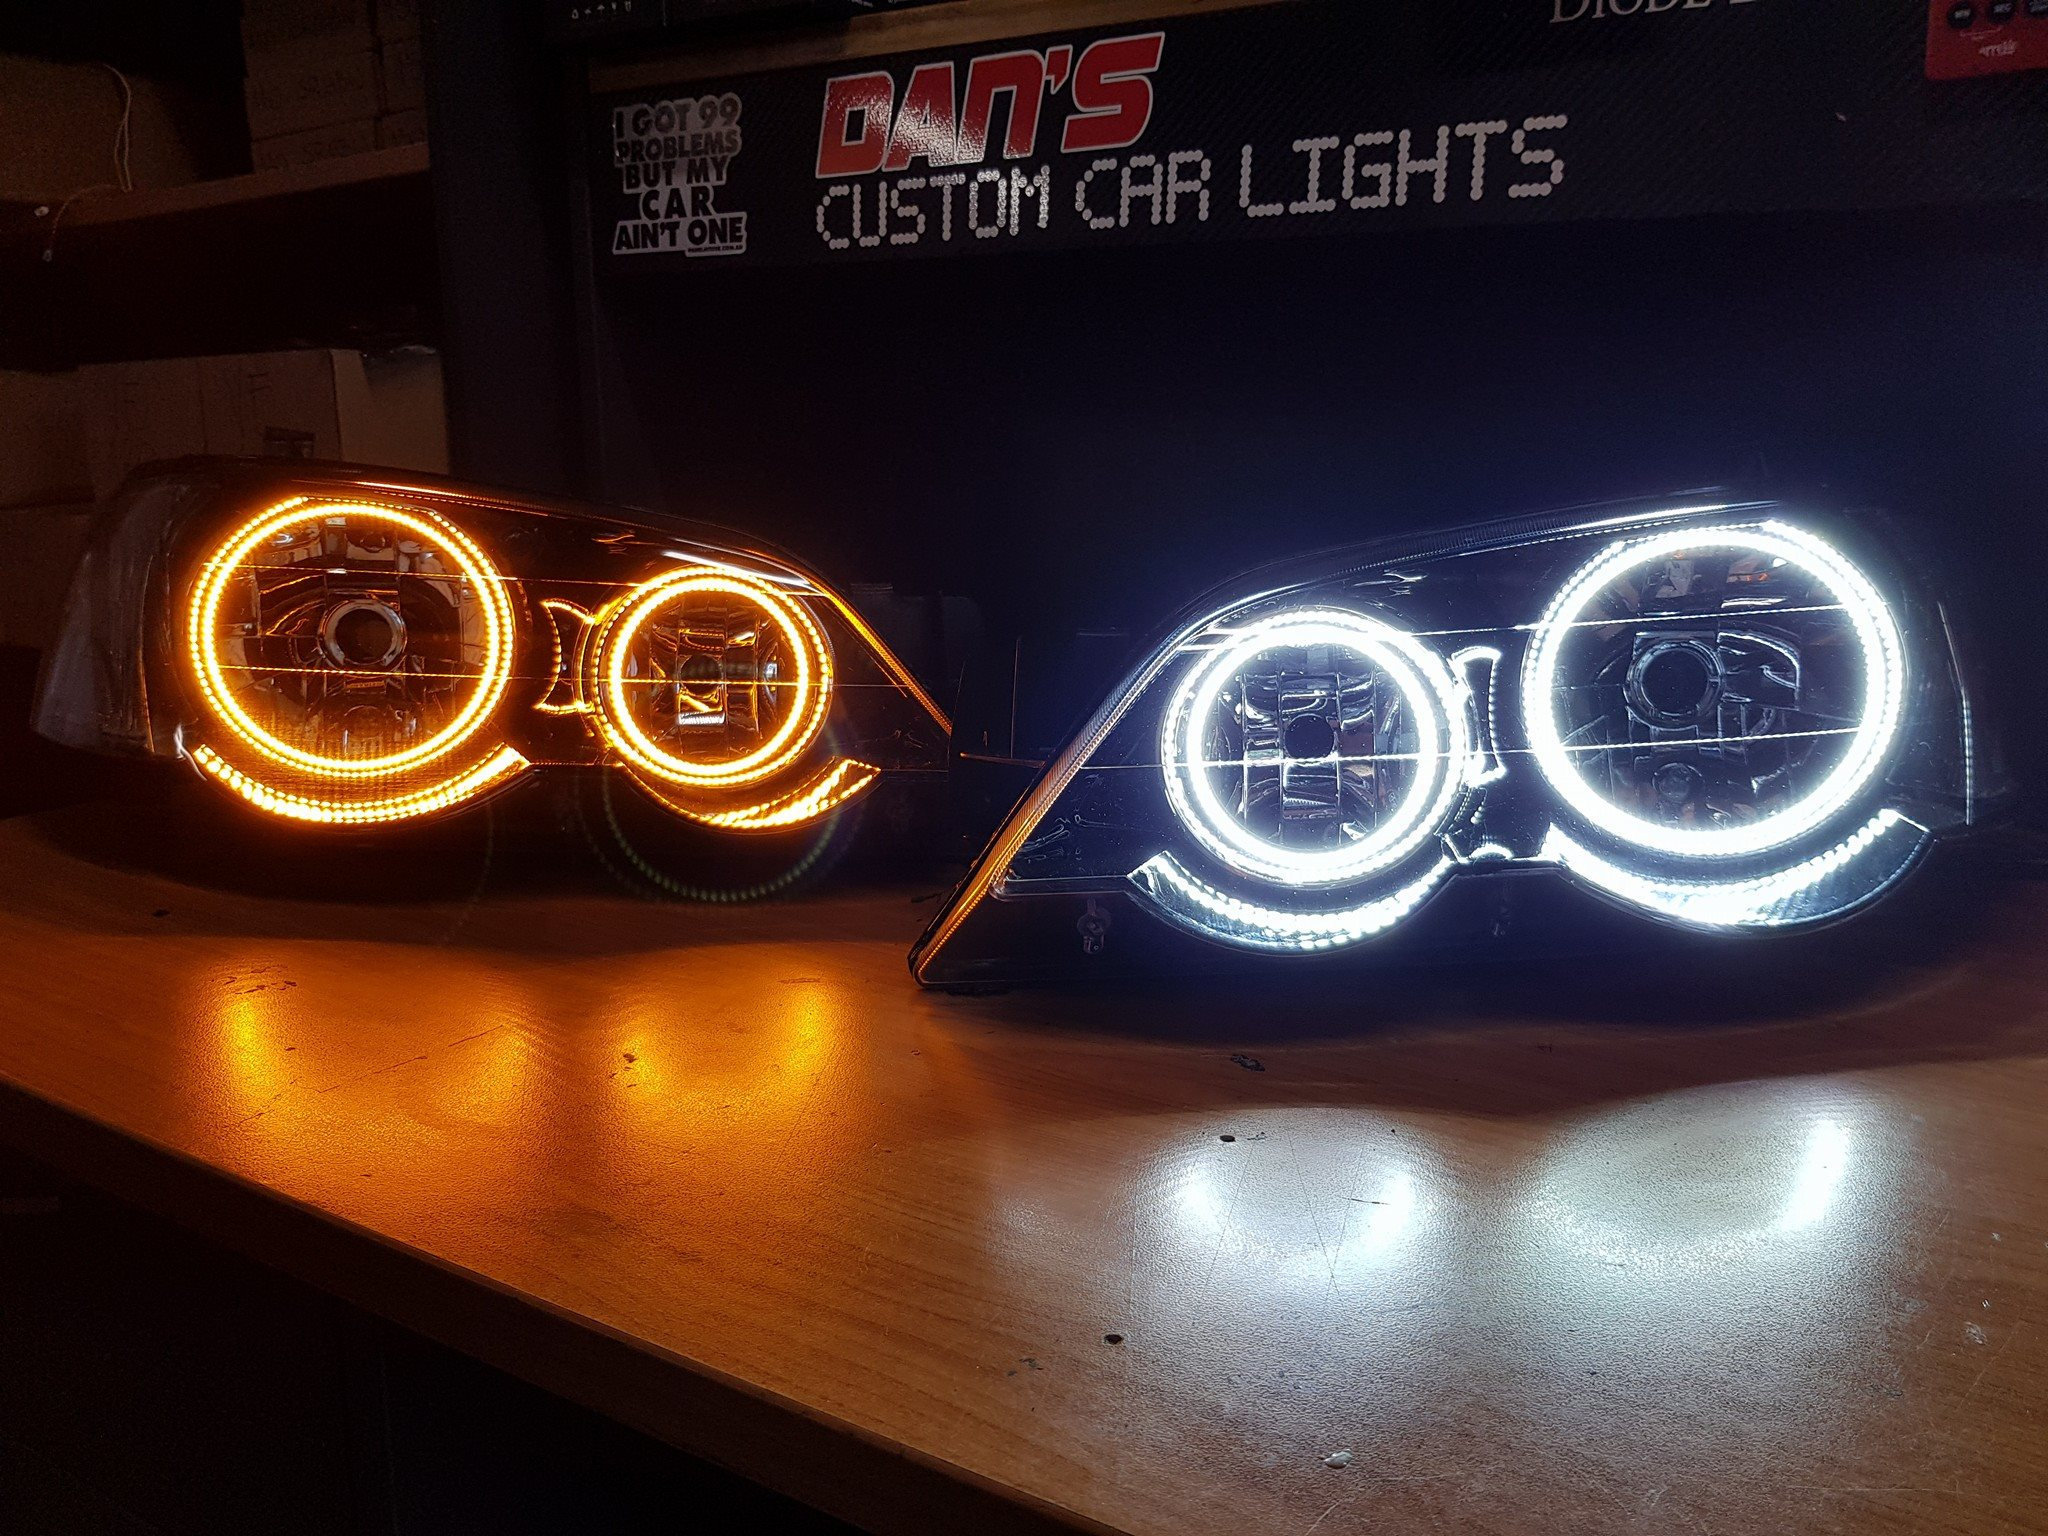 Ford Falcon BA/BF XR6/XR8 Headlights with White Halo Rings and DRL  (optional) | danscustomcarlights